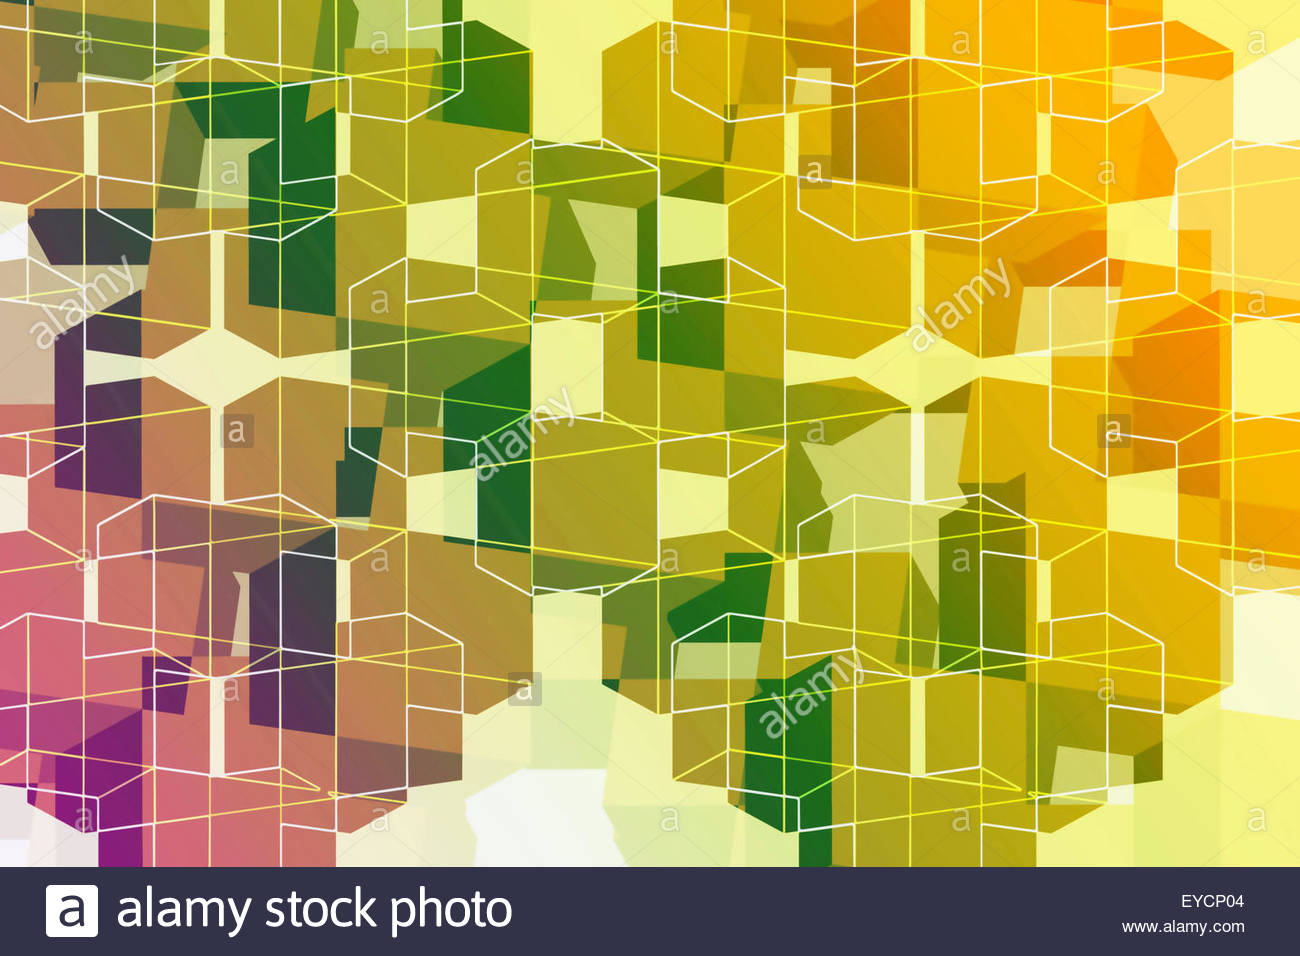 Abstract full frame three dimensional geometric backgrounds pattern - Stock Image